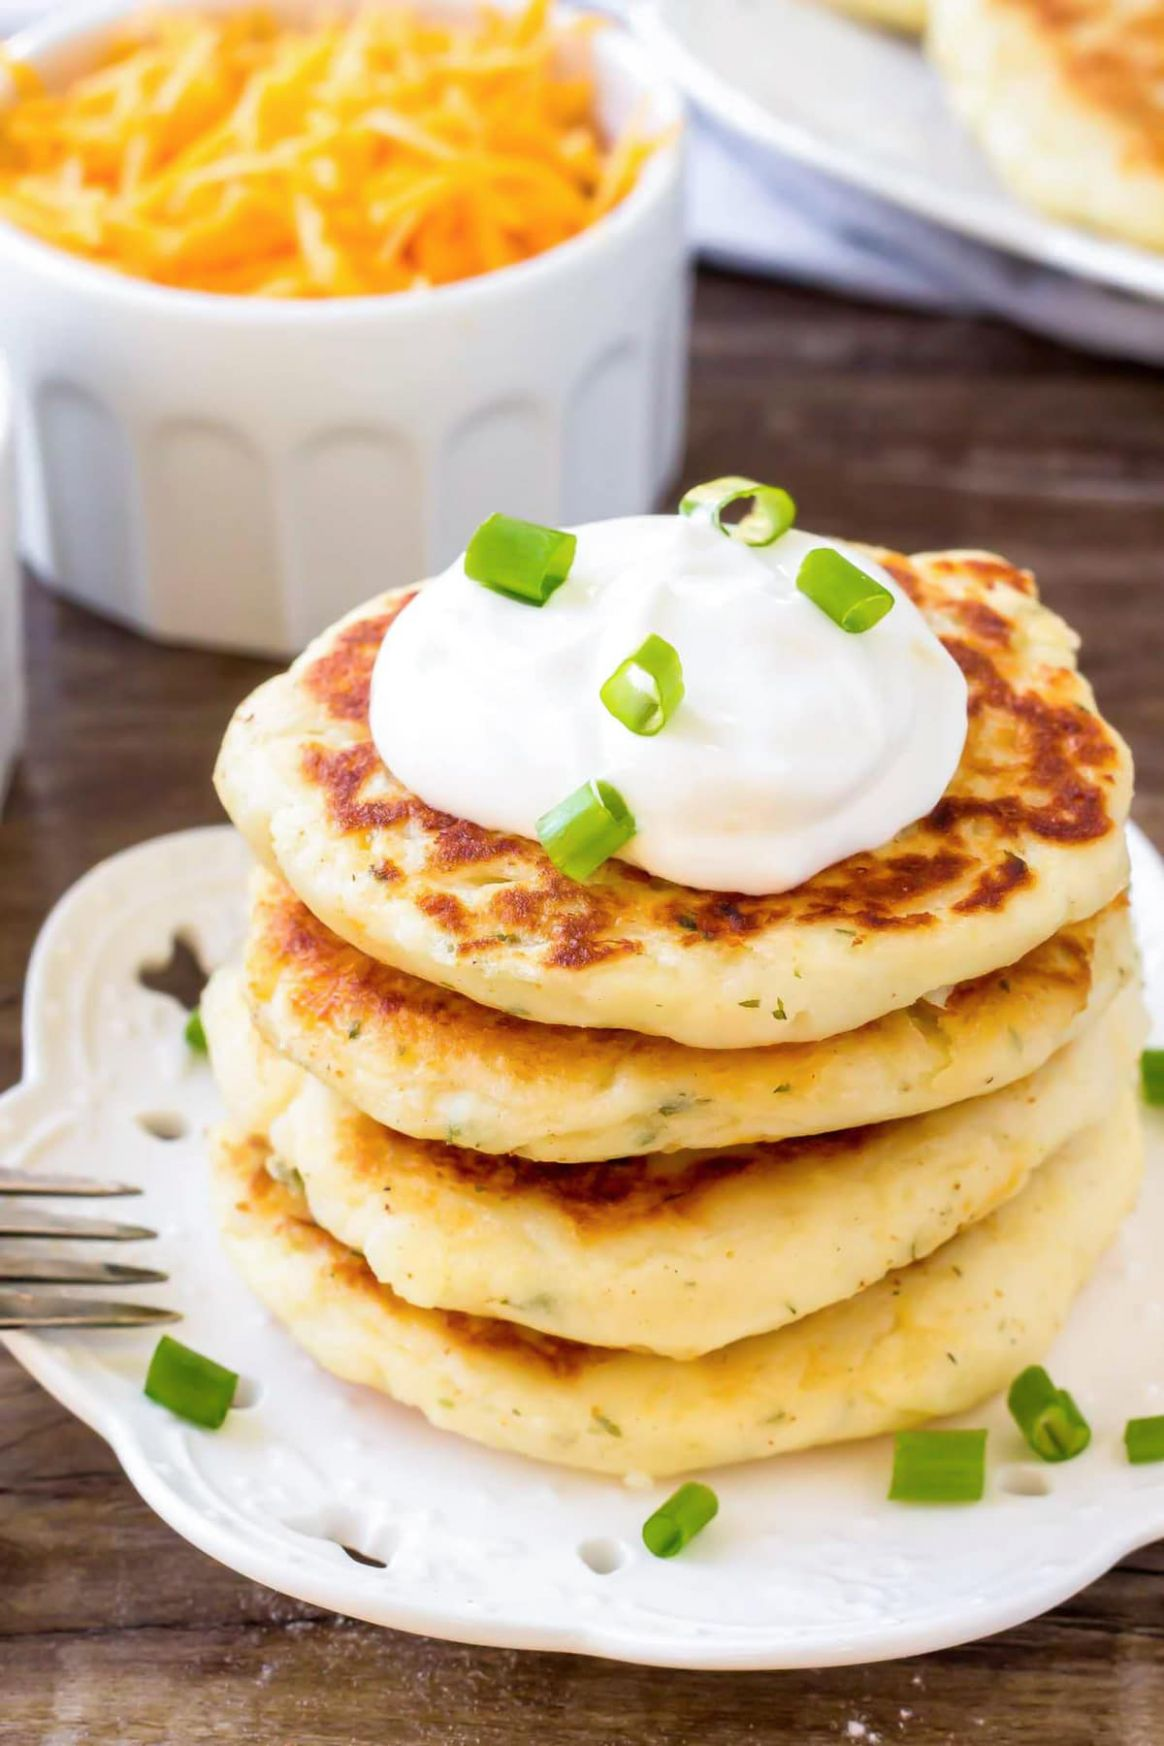 Potato Pancake Recipe - Recipes Potato Pancakes